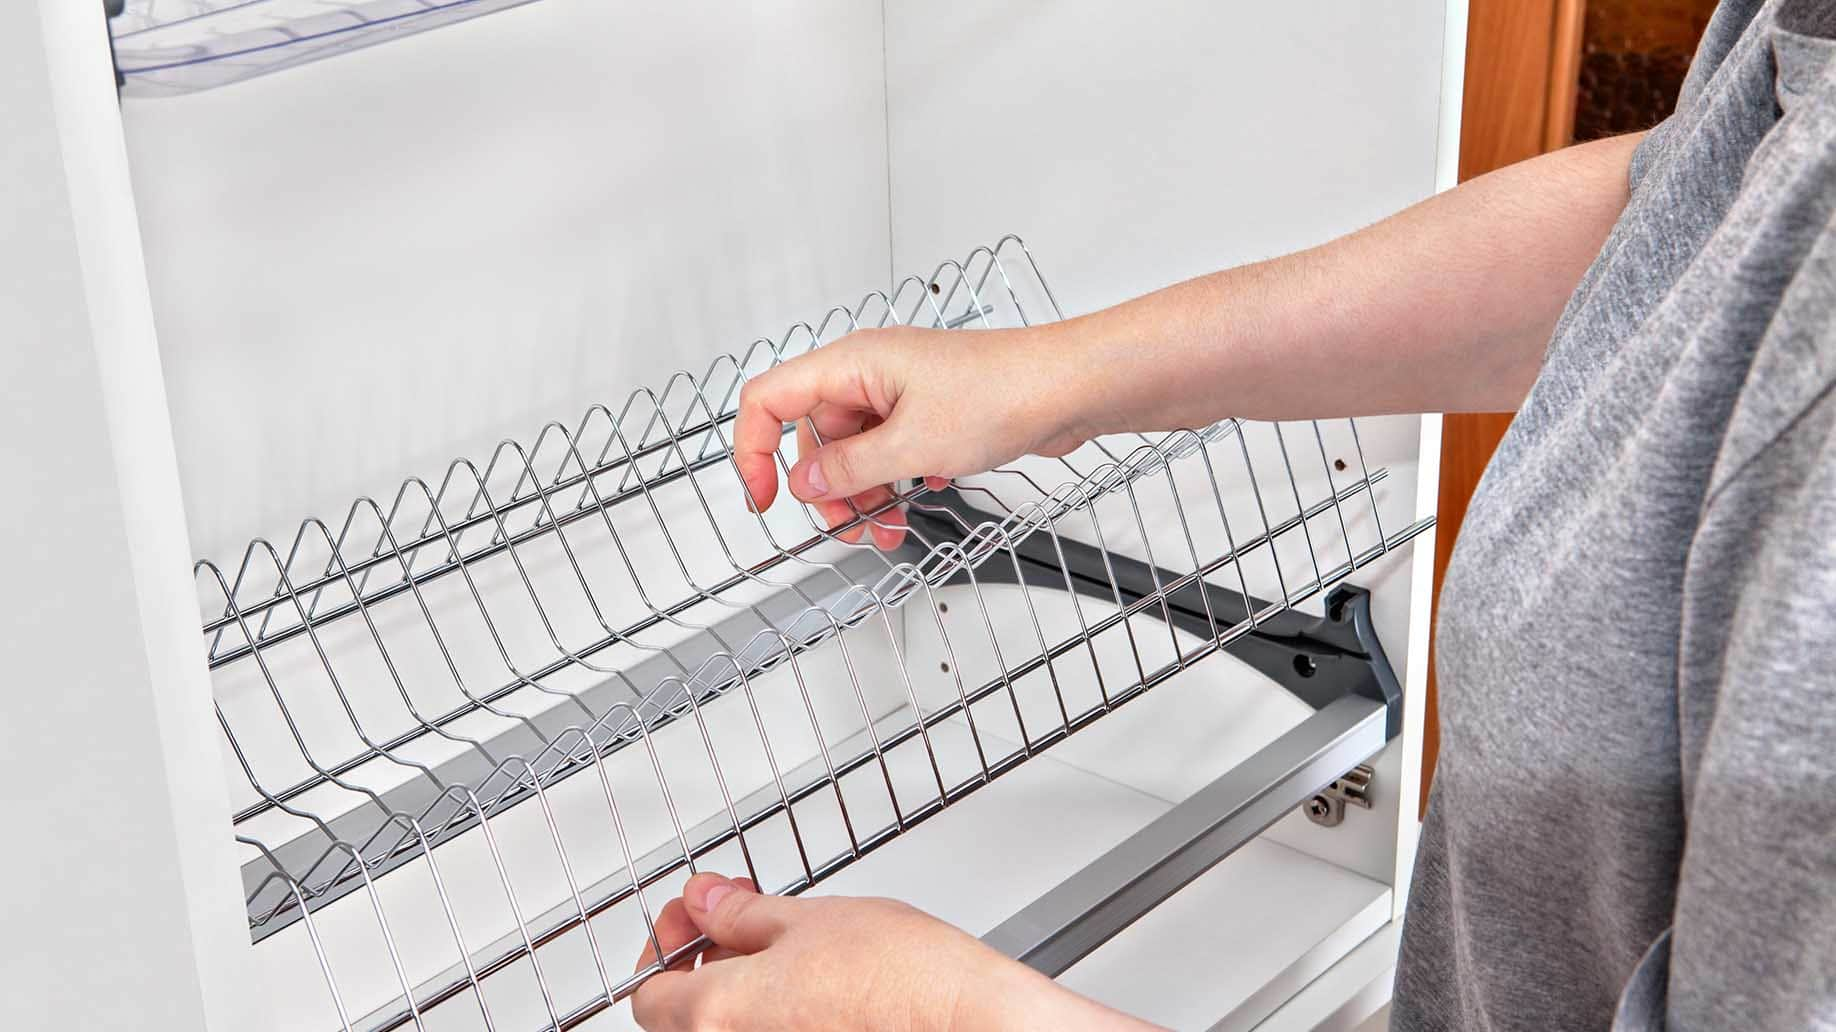 woman placing a wire shelf inside a cabinet